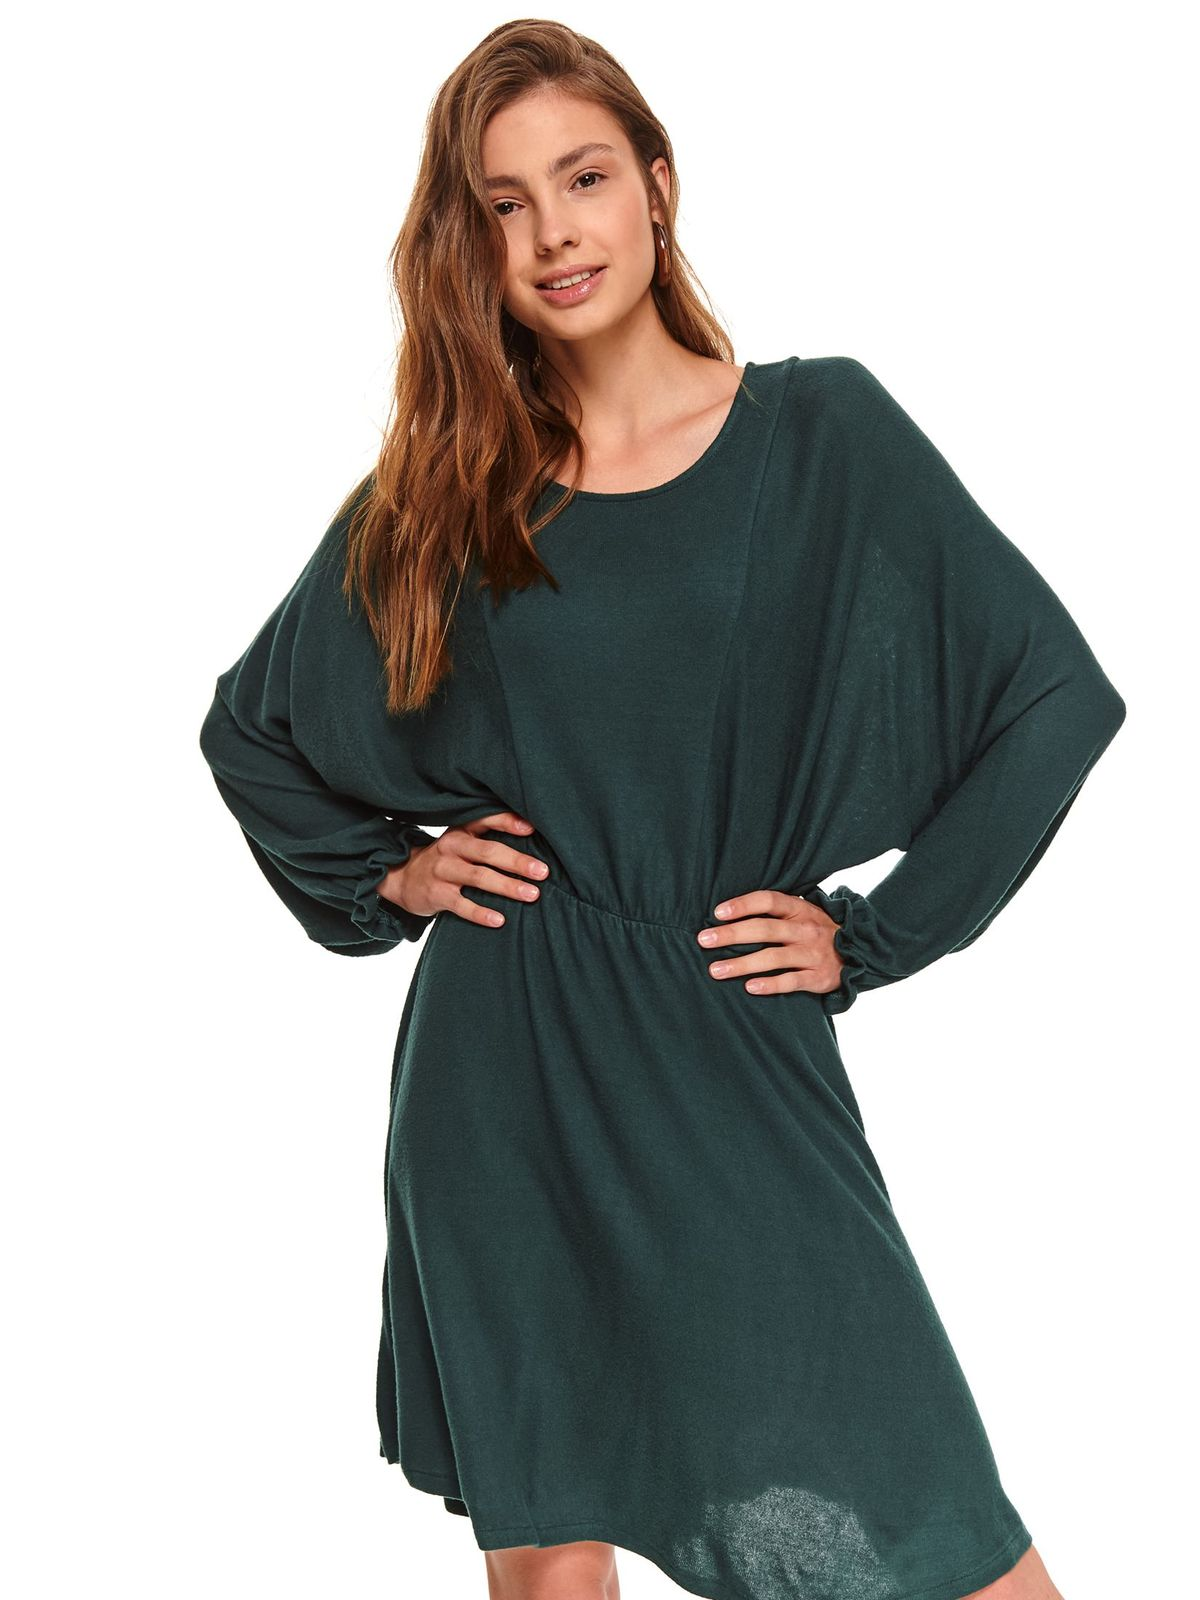 Green dress daily flared with elastic waist airy fabric